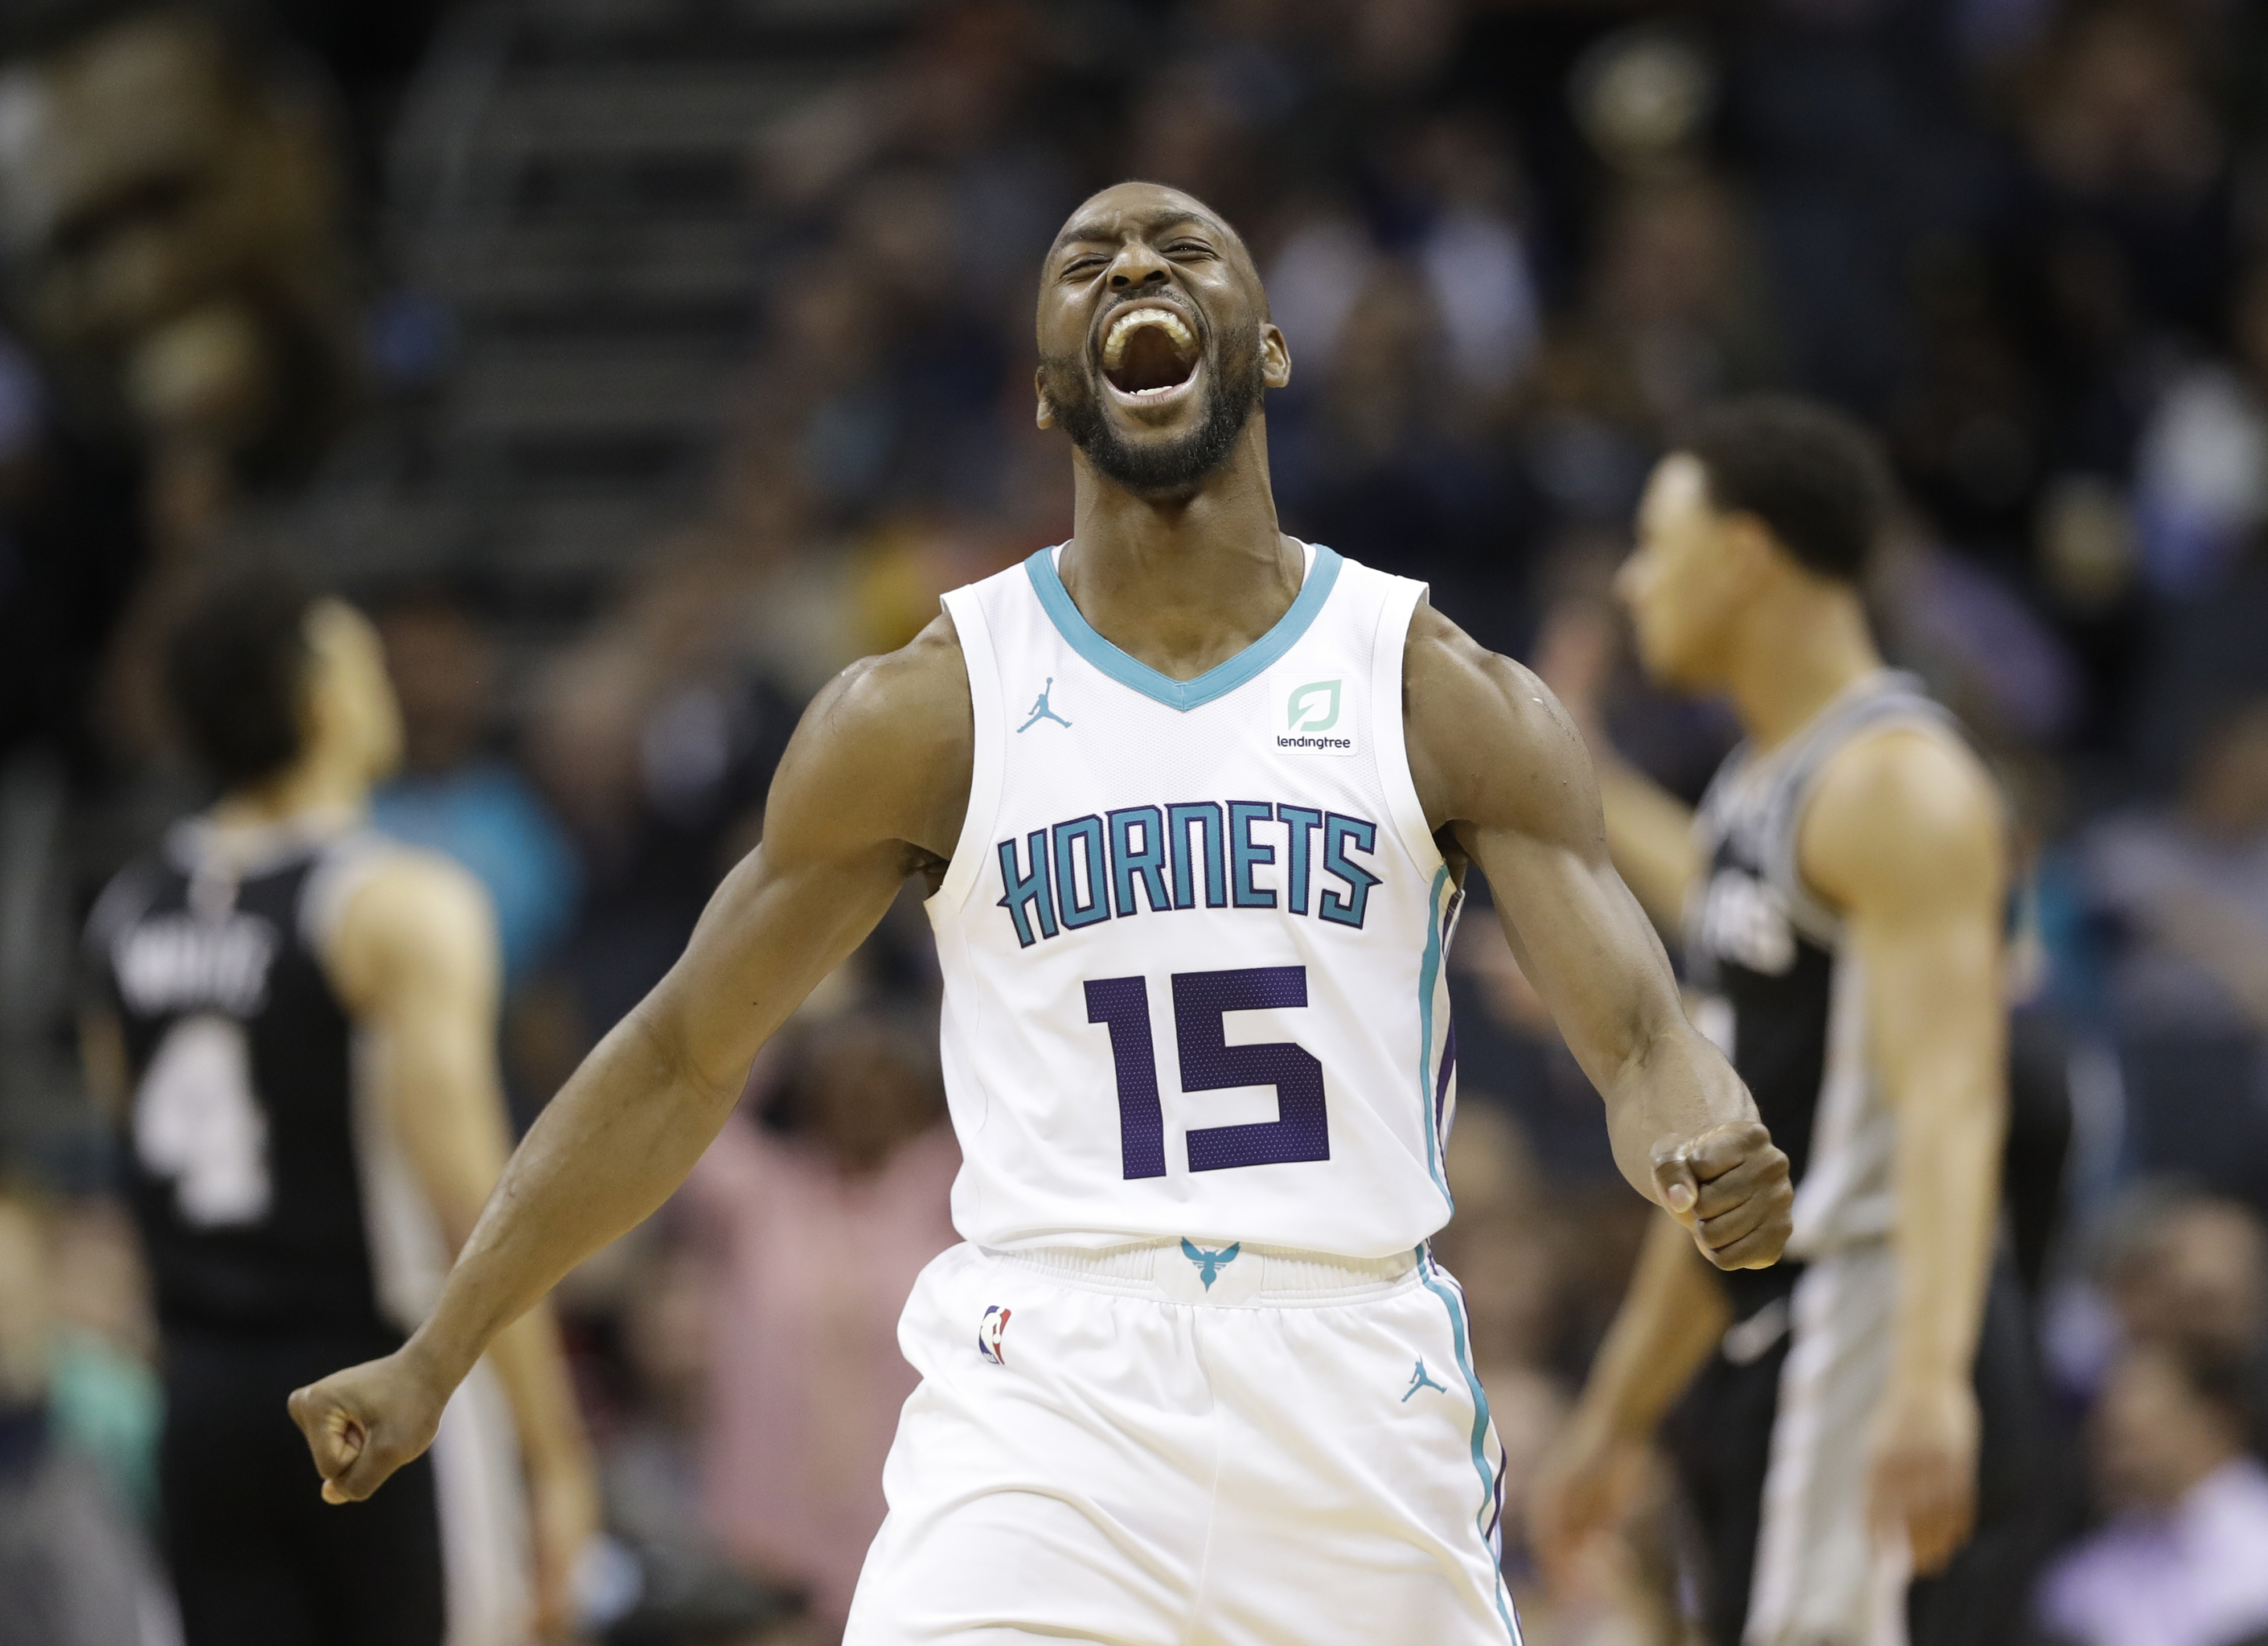 ae893e442 Buzz regarding Kemba Walker is real, and it's the right move for Celtics